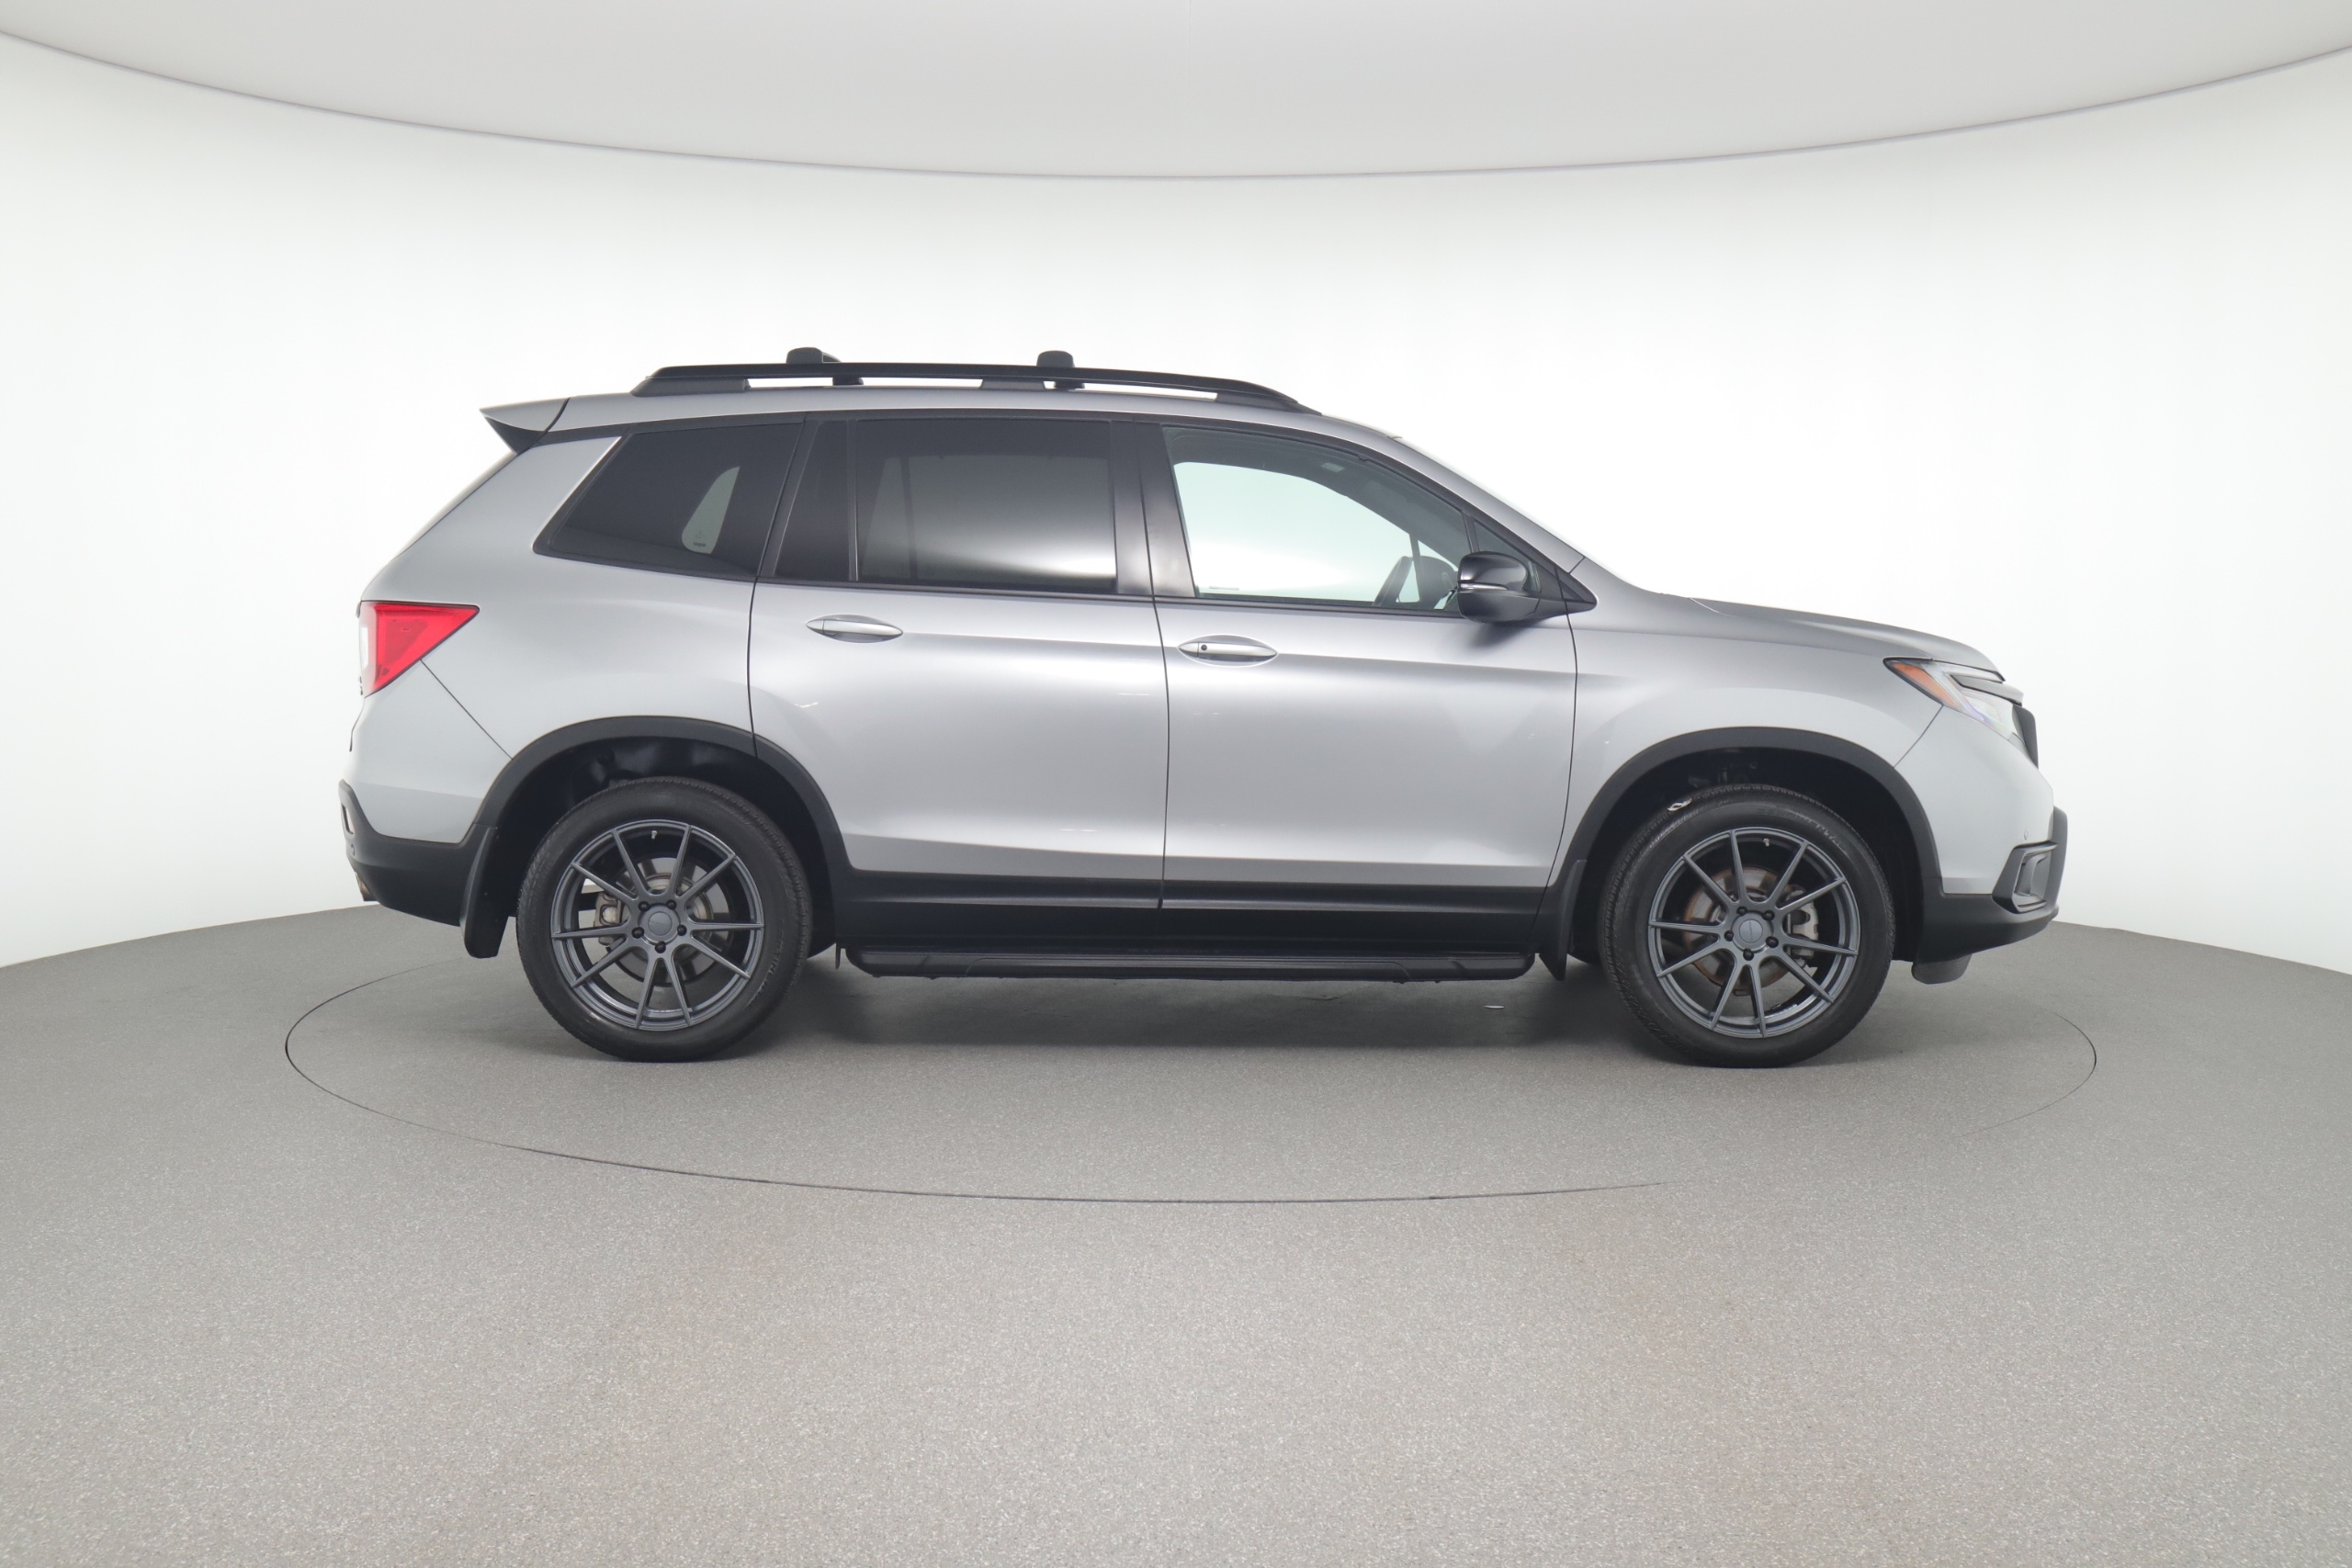 Honda Passport vs Pilot- Which One Is Better For You?